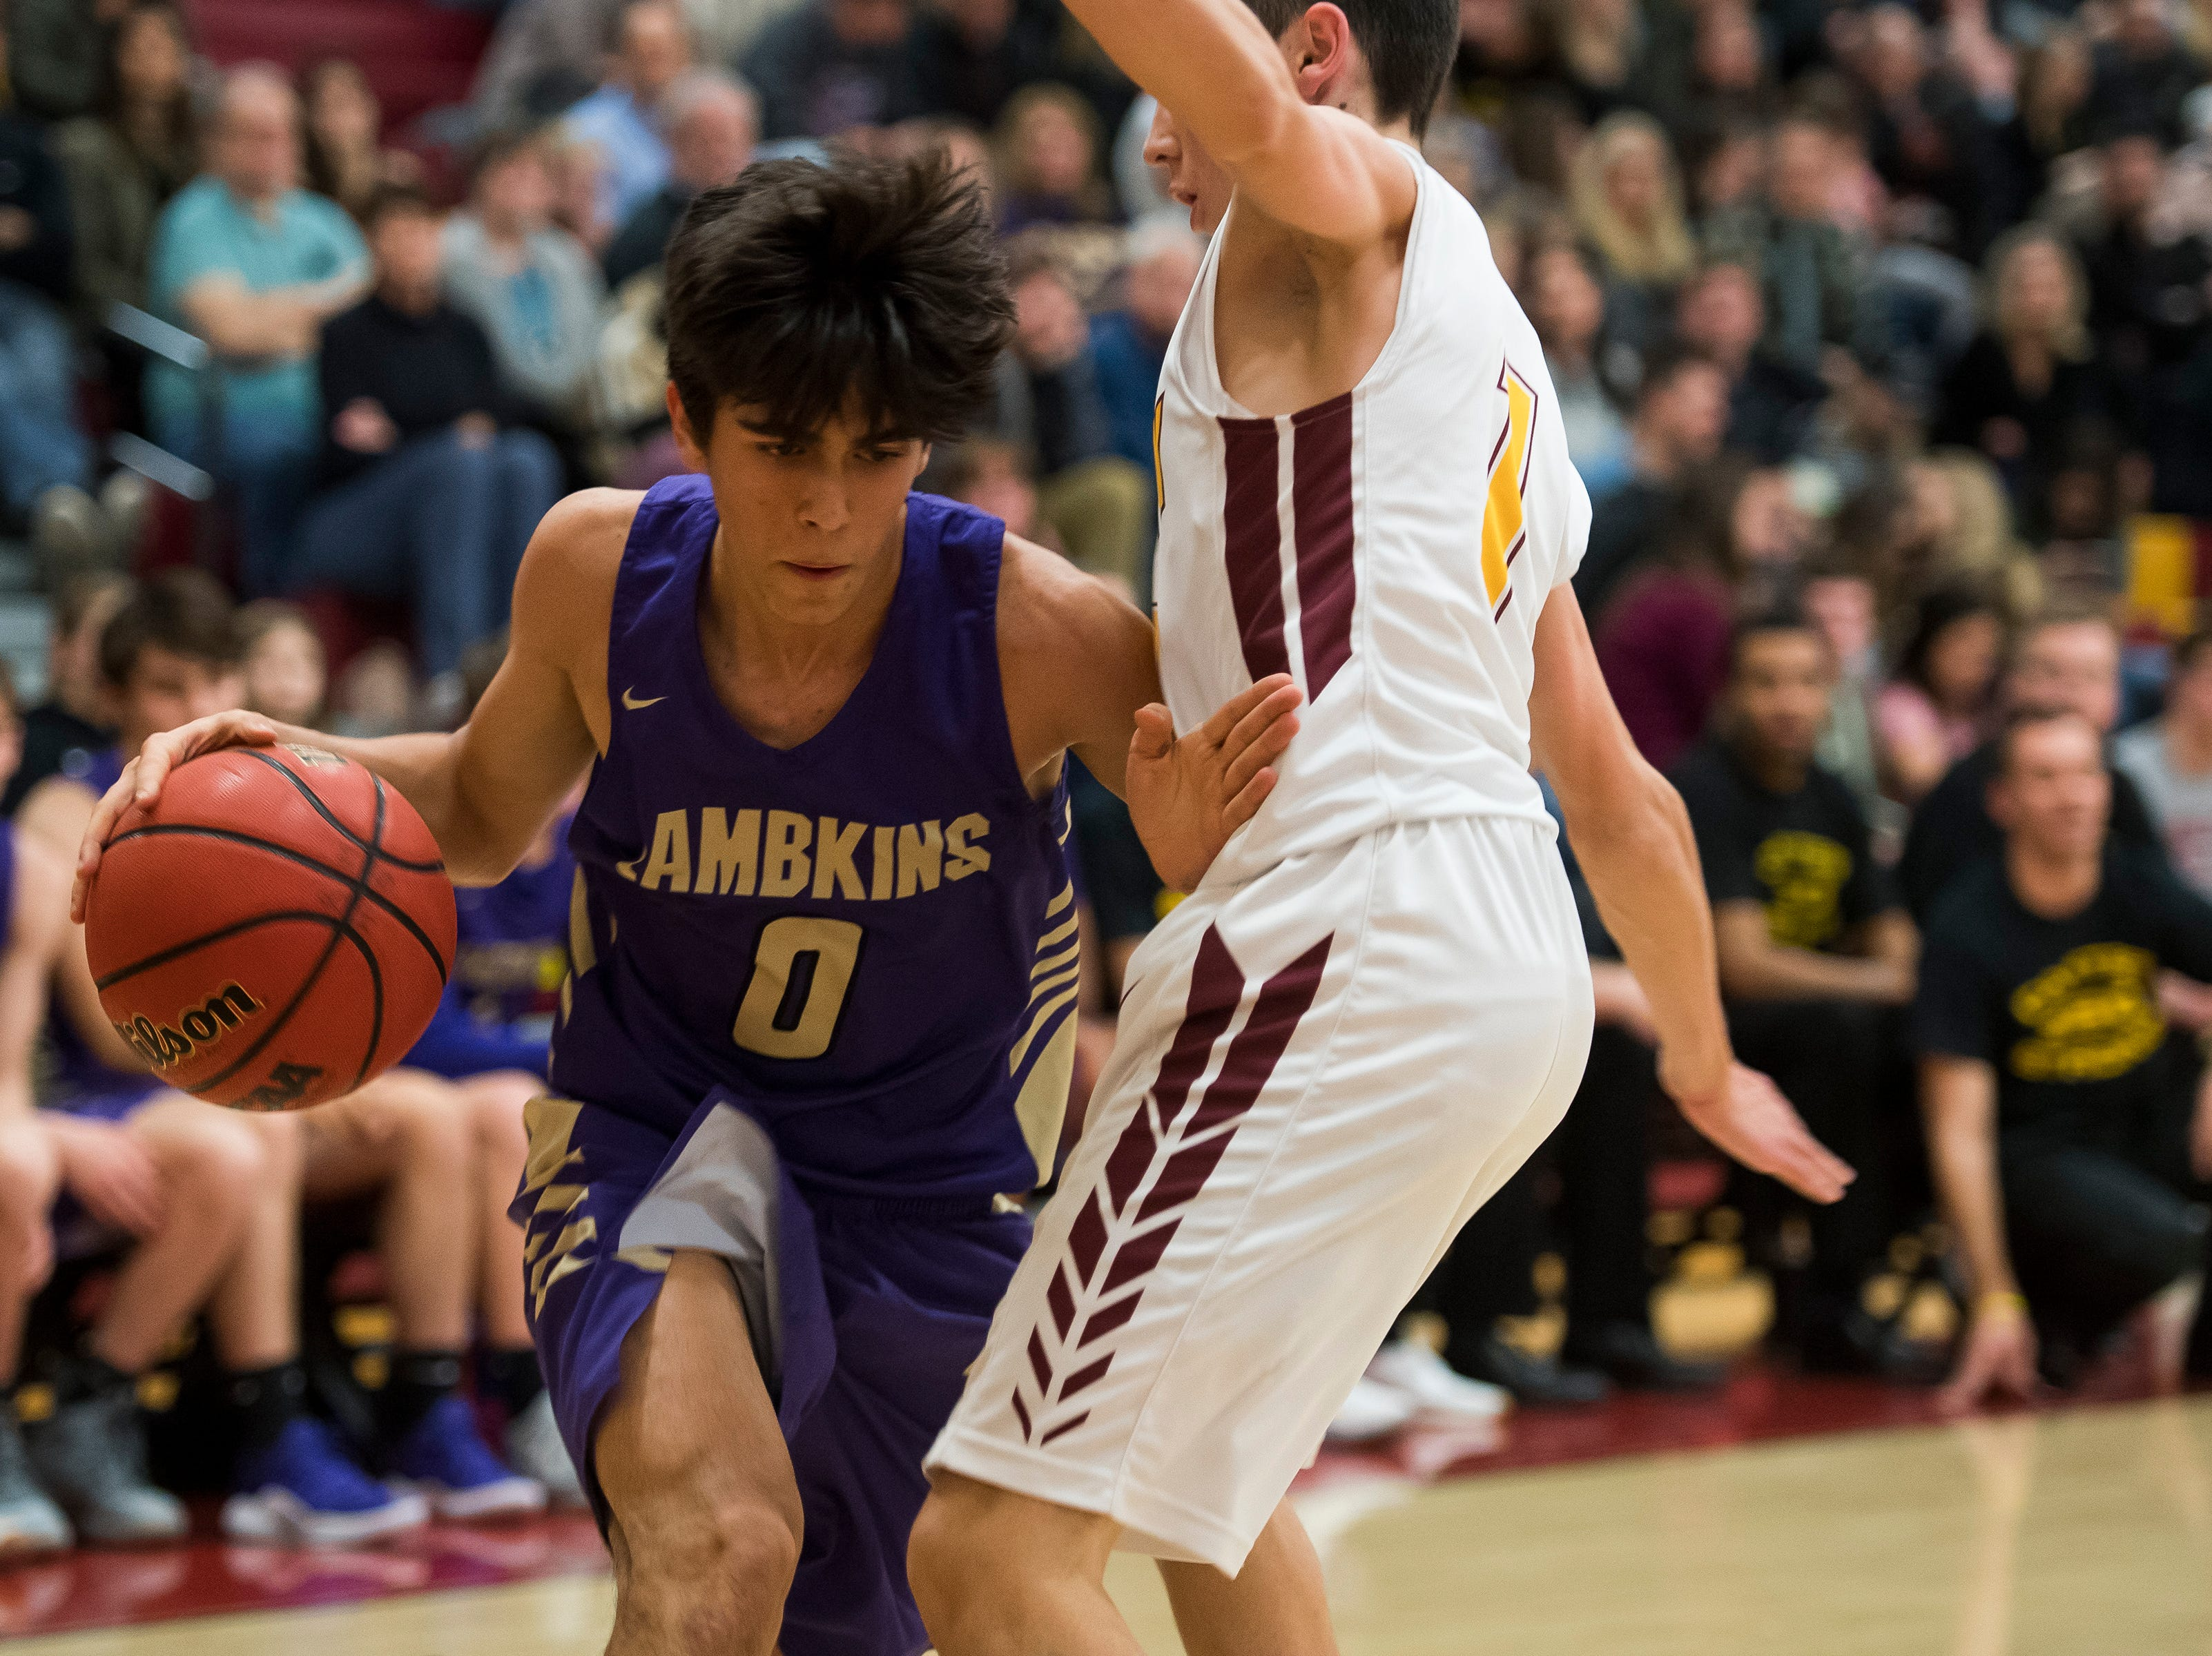 Fort Collins High School freshman Hugo Veloso (0) drives into the paint during a game against Rocky Mountain High School on Friday, Jan. 18, 2019, at Rocky Mountain High School in Fort Collins, Colo.